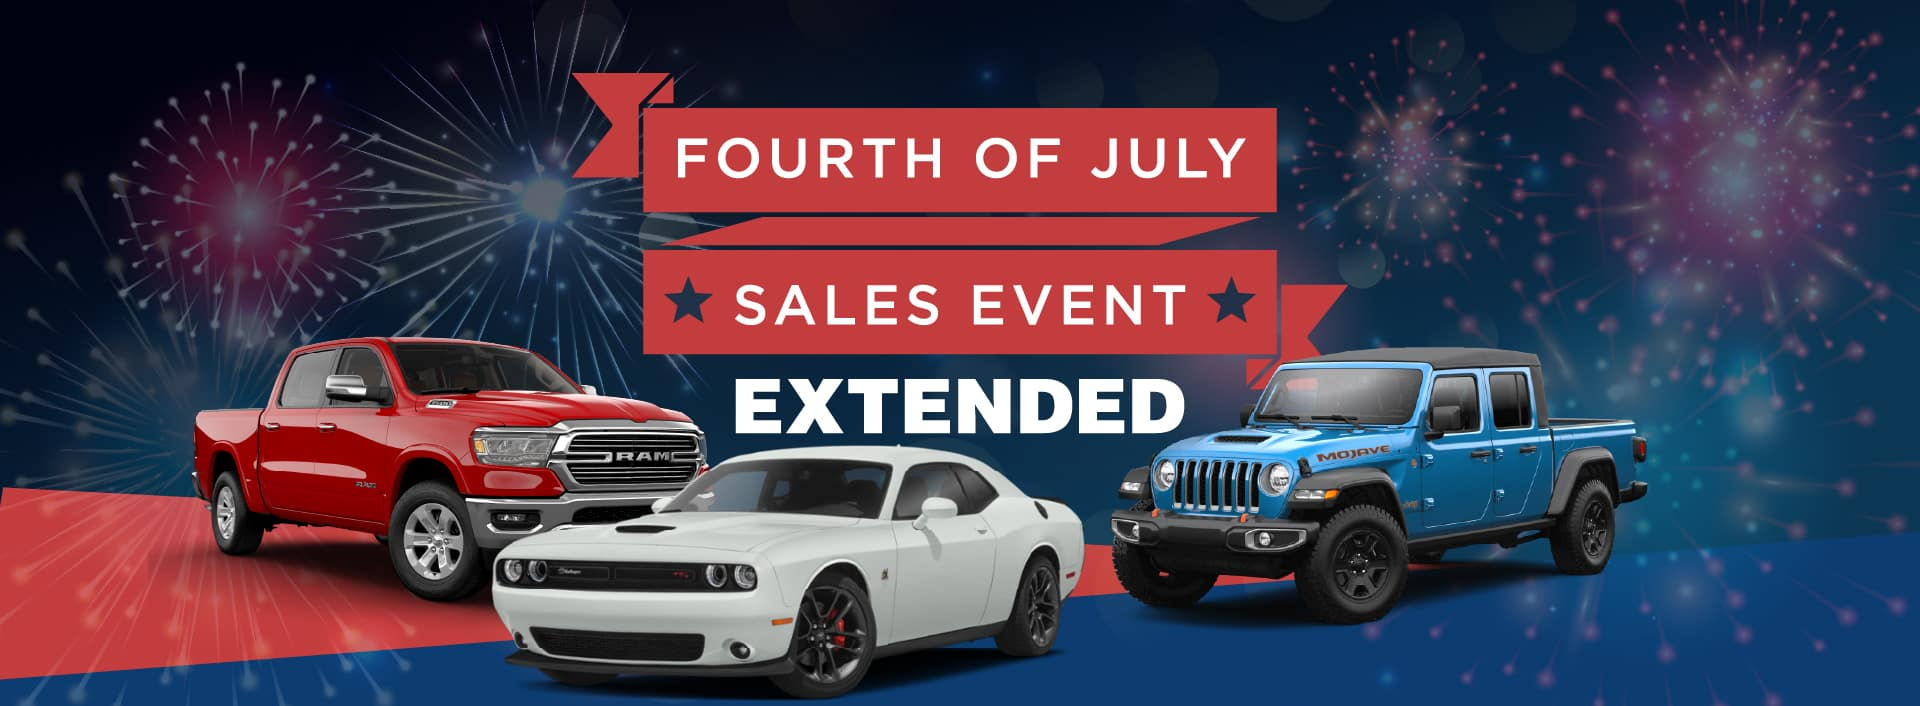 21july4th extended (2)